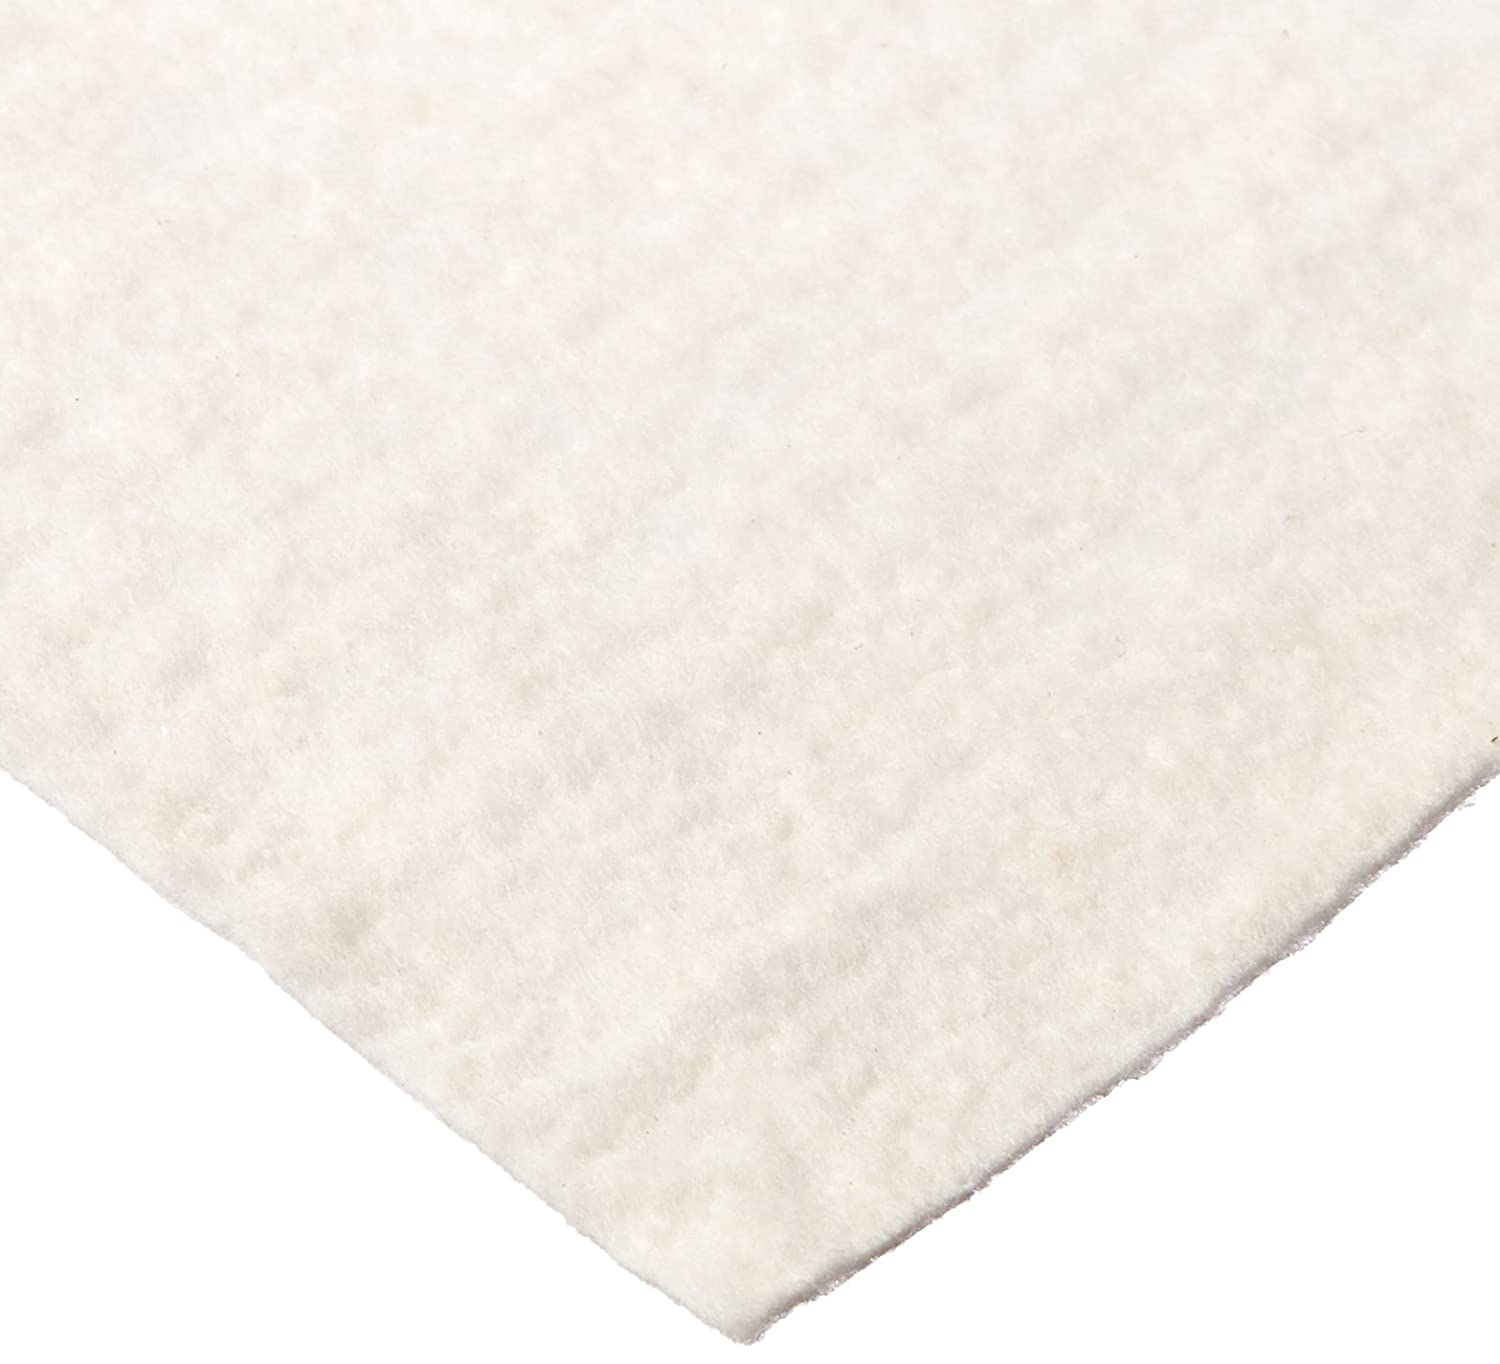 Fairfield SNTY4505 Soft and Toasty Natural 100-Percent Cotton Batting, Low Soft, 45-Inch, 5 Yard Roll